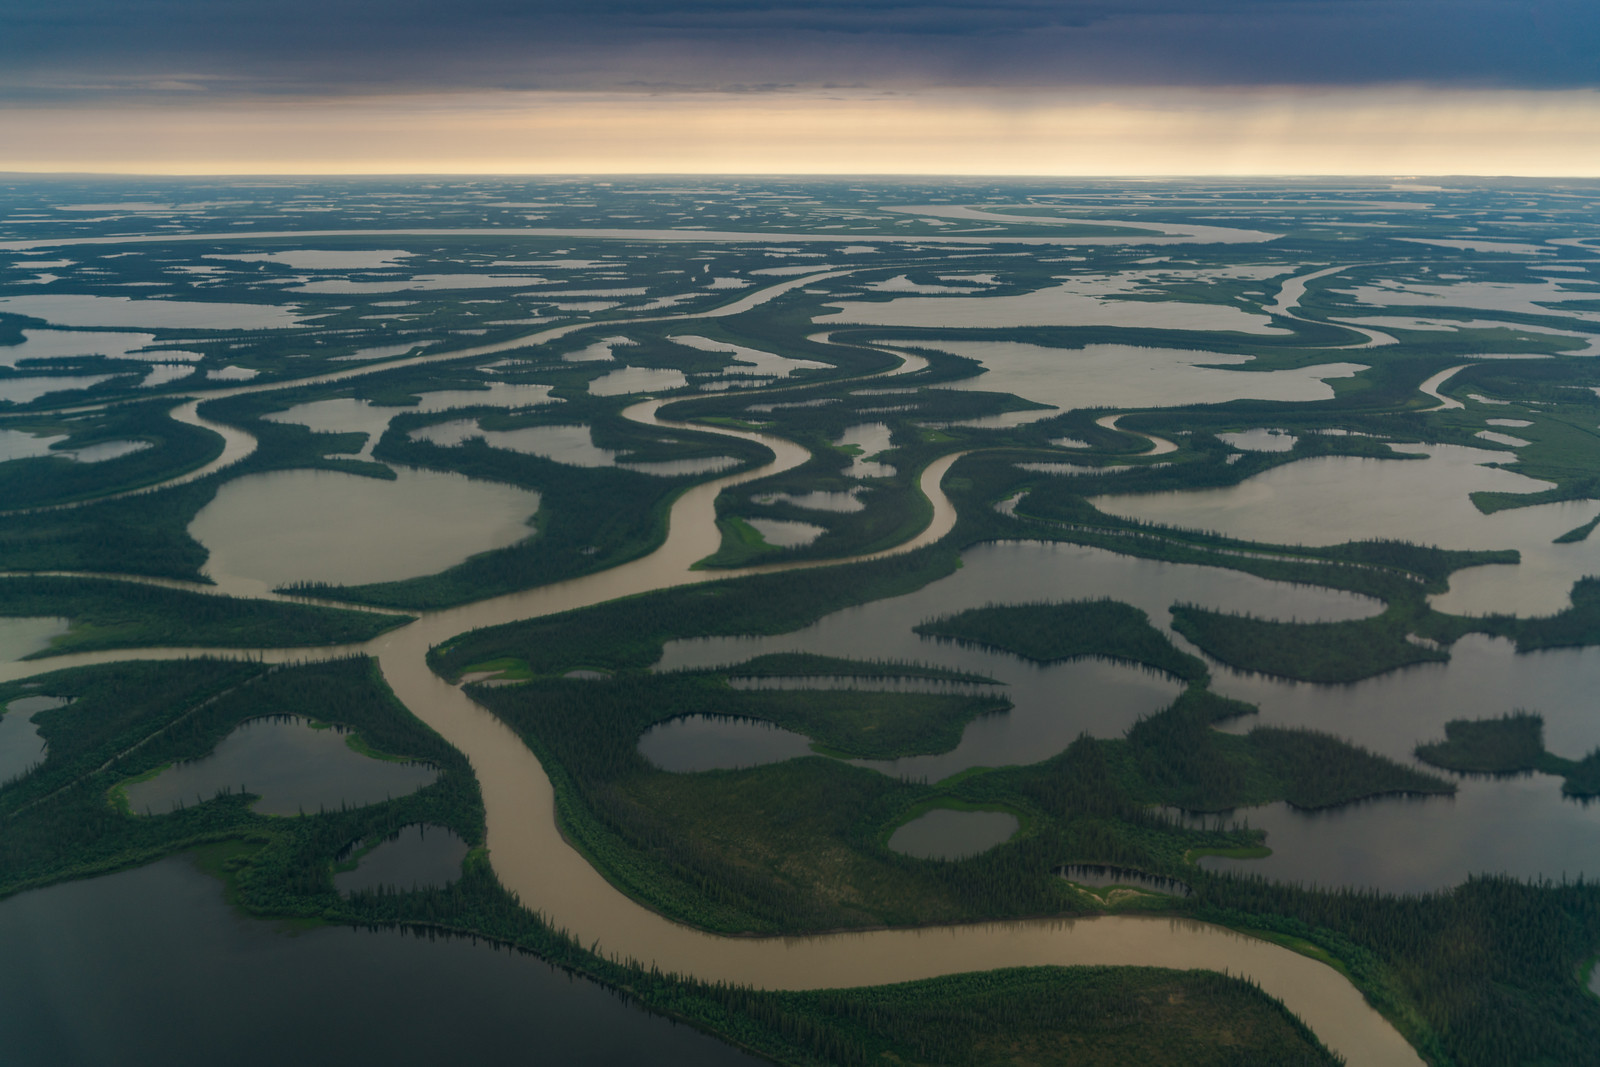 The Mackenzie Delta on our way to the Yukon, Canada